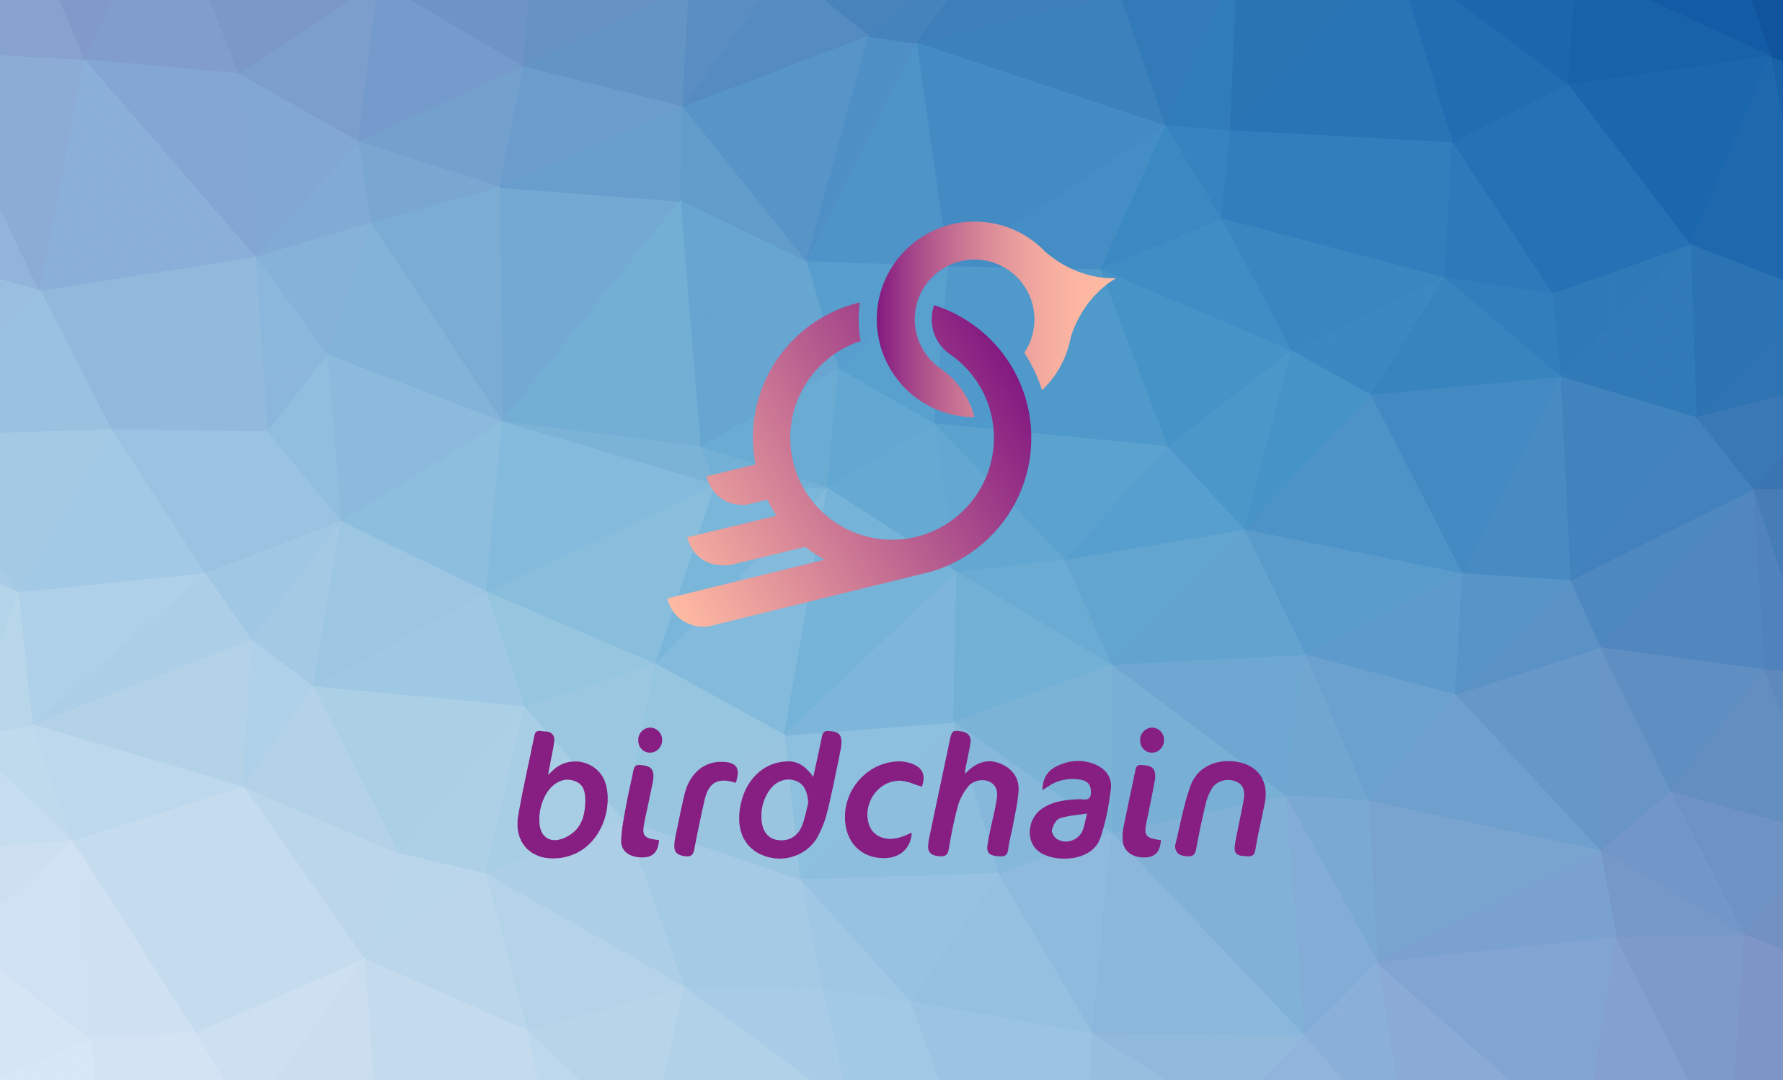 Background-Birdchain